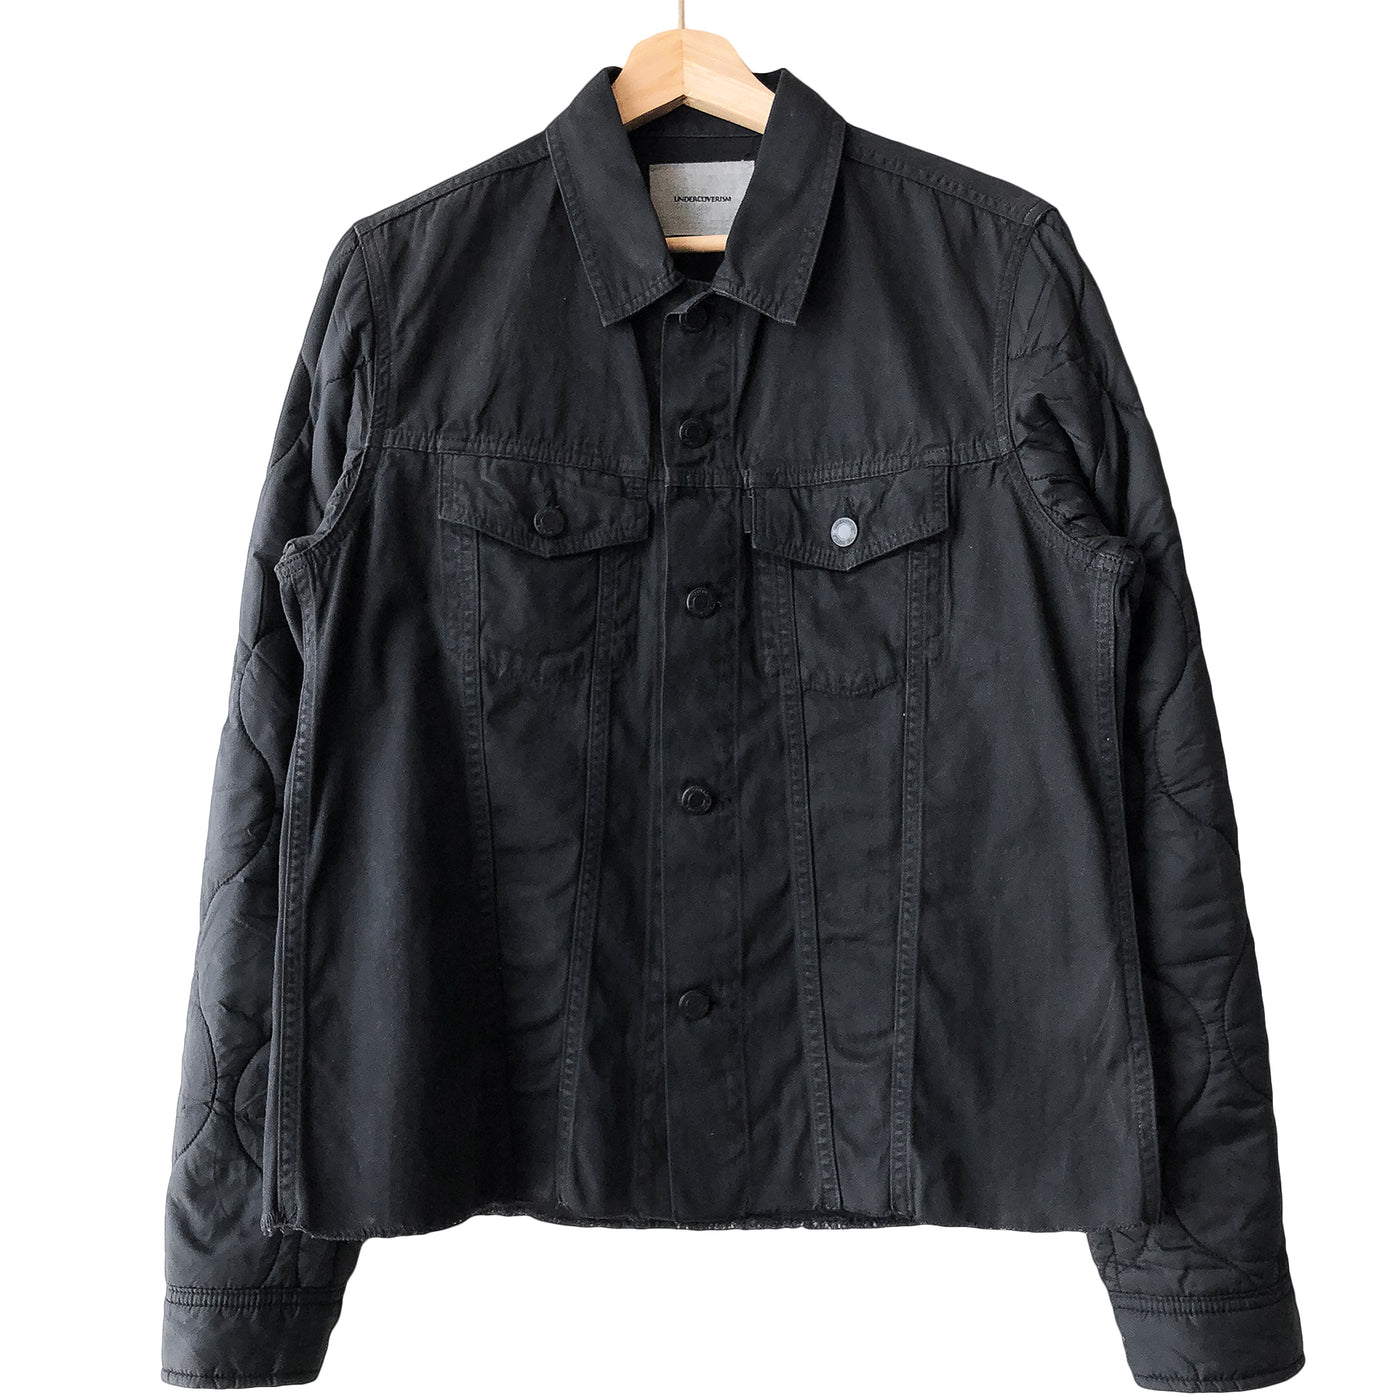 Undercover Undercoverism Nylon Quilted Denim Hybrid Trucker Jacket - AW13